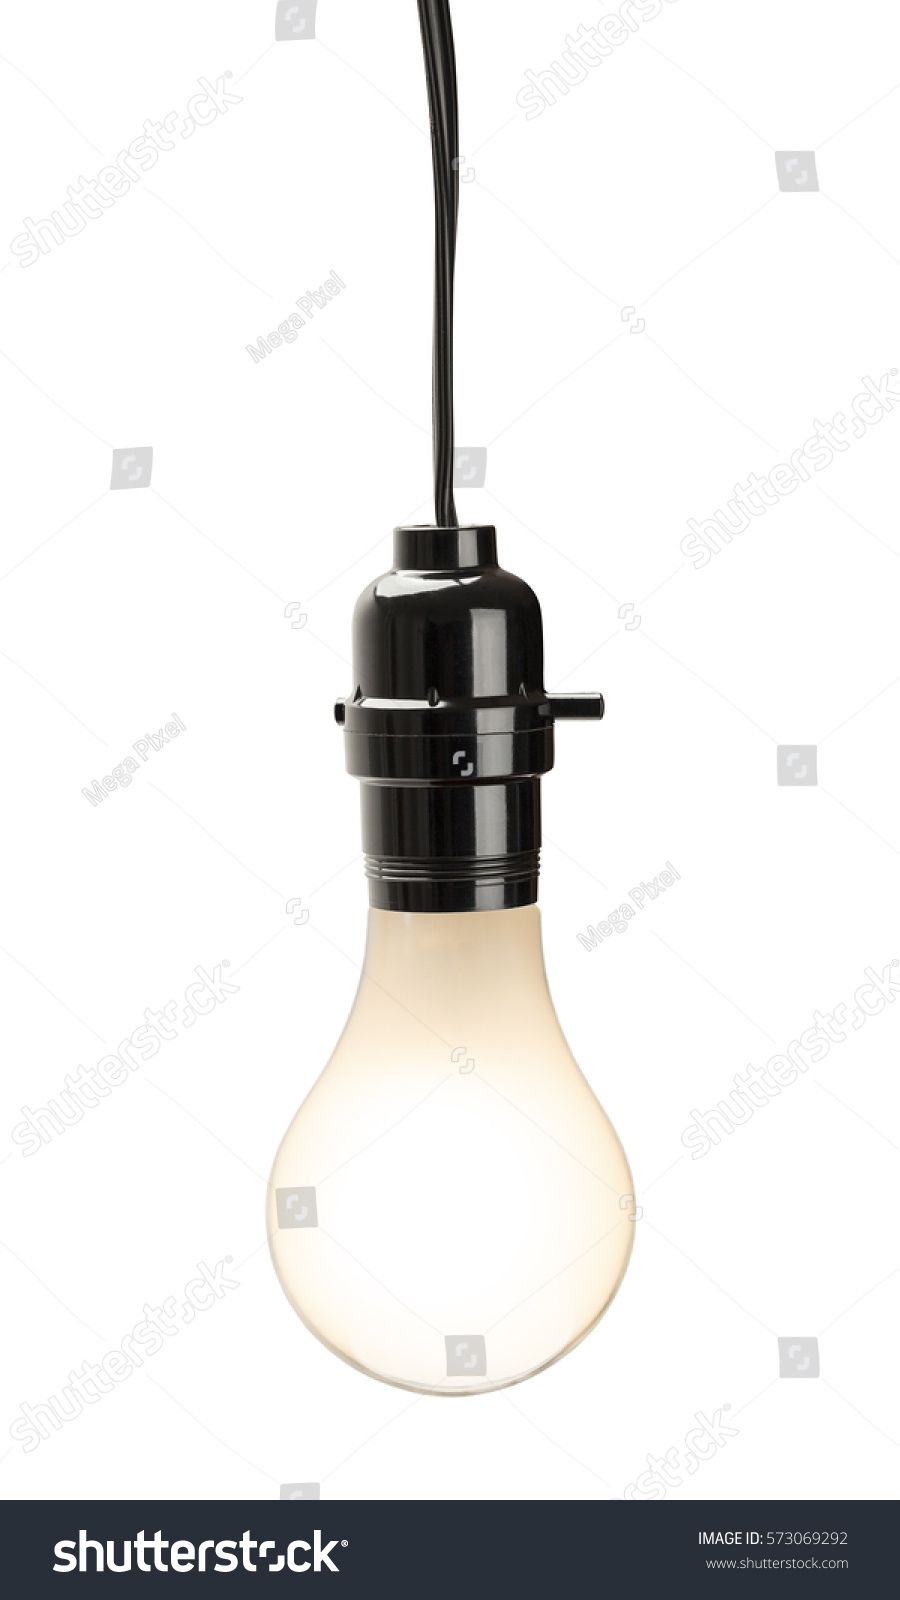 Lit Light Bulb Hanging With Cord Power Switch Isolated On White Background